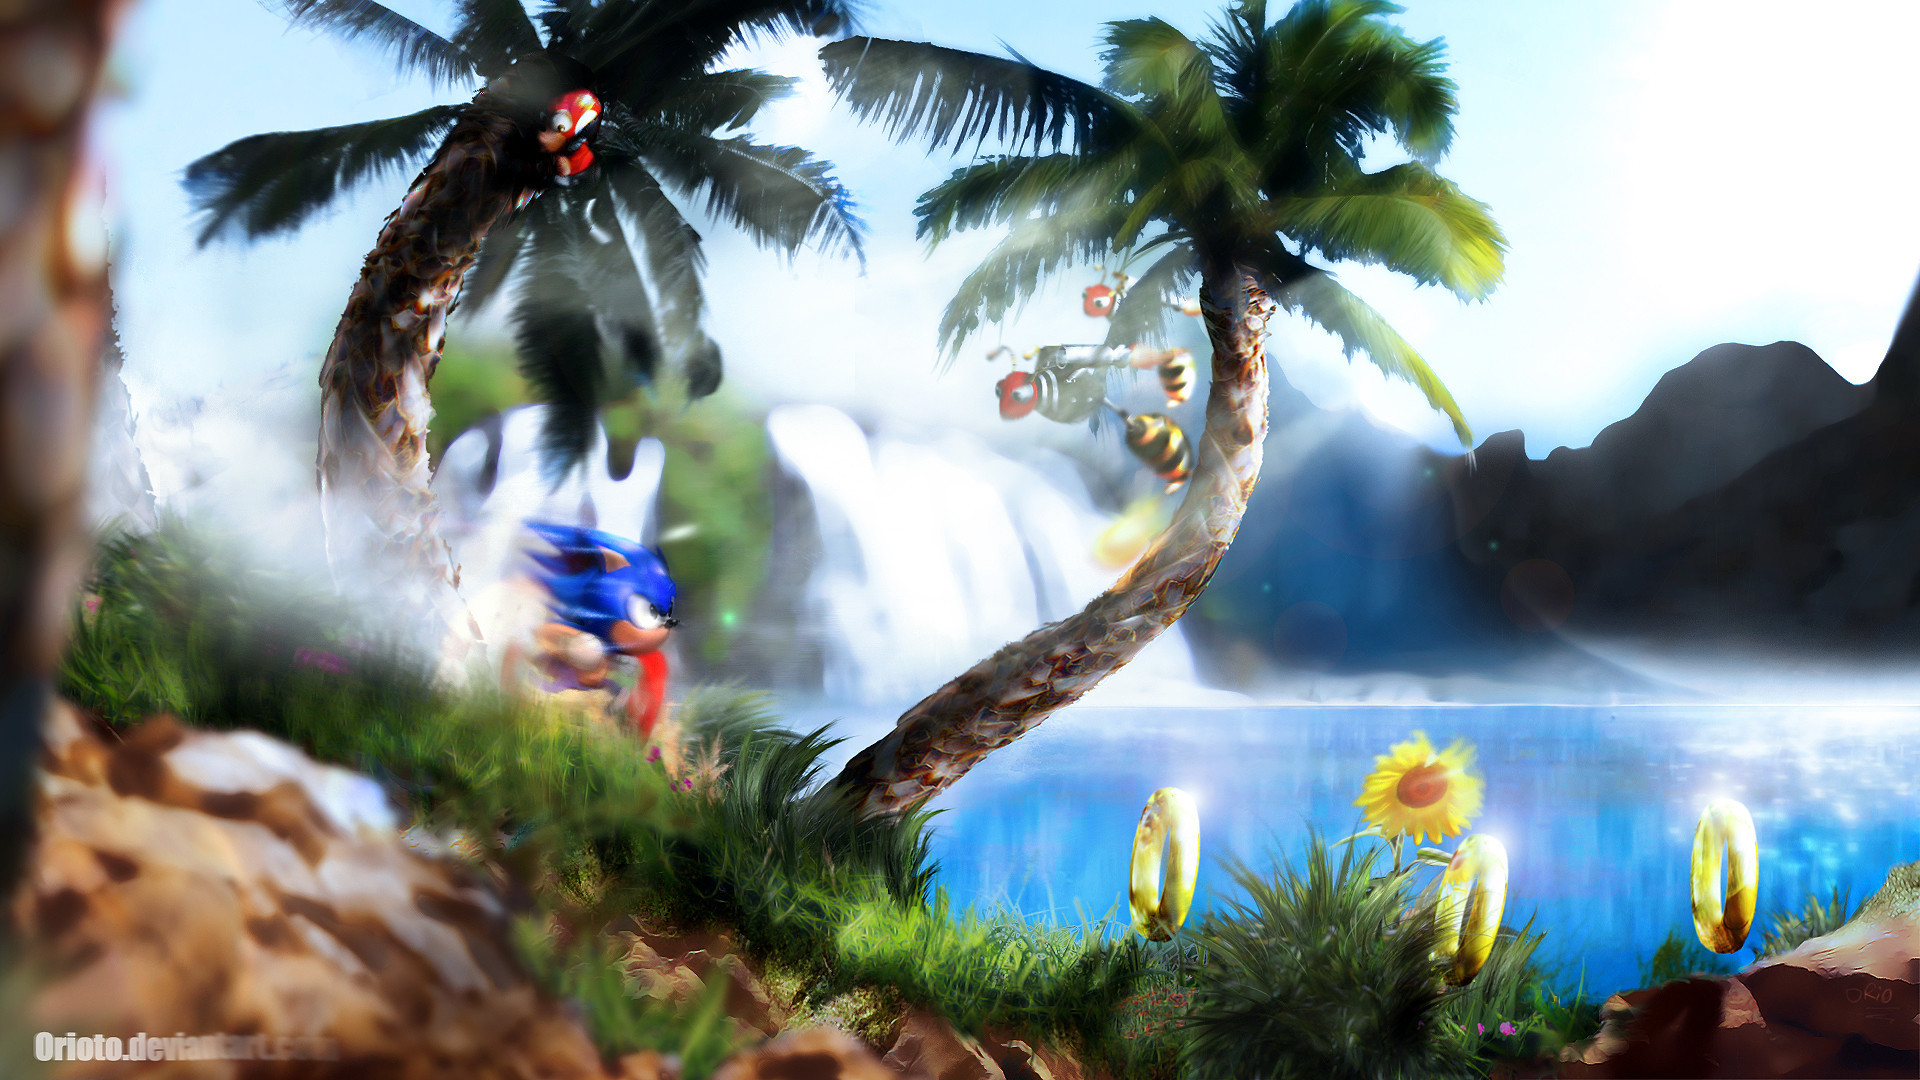 20 of the best video game HD wallpapers you'll ever see. Credit to Orioto  from DeviantArt.